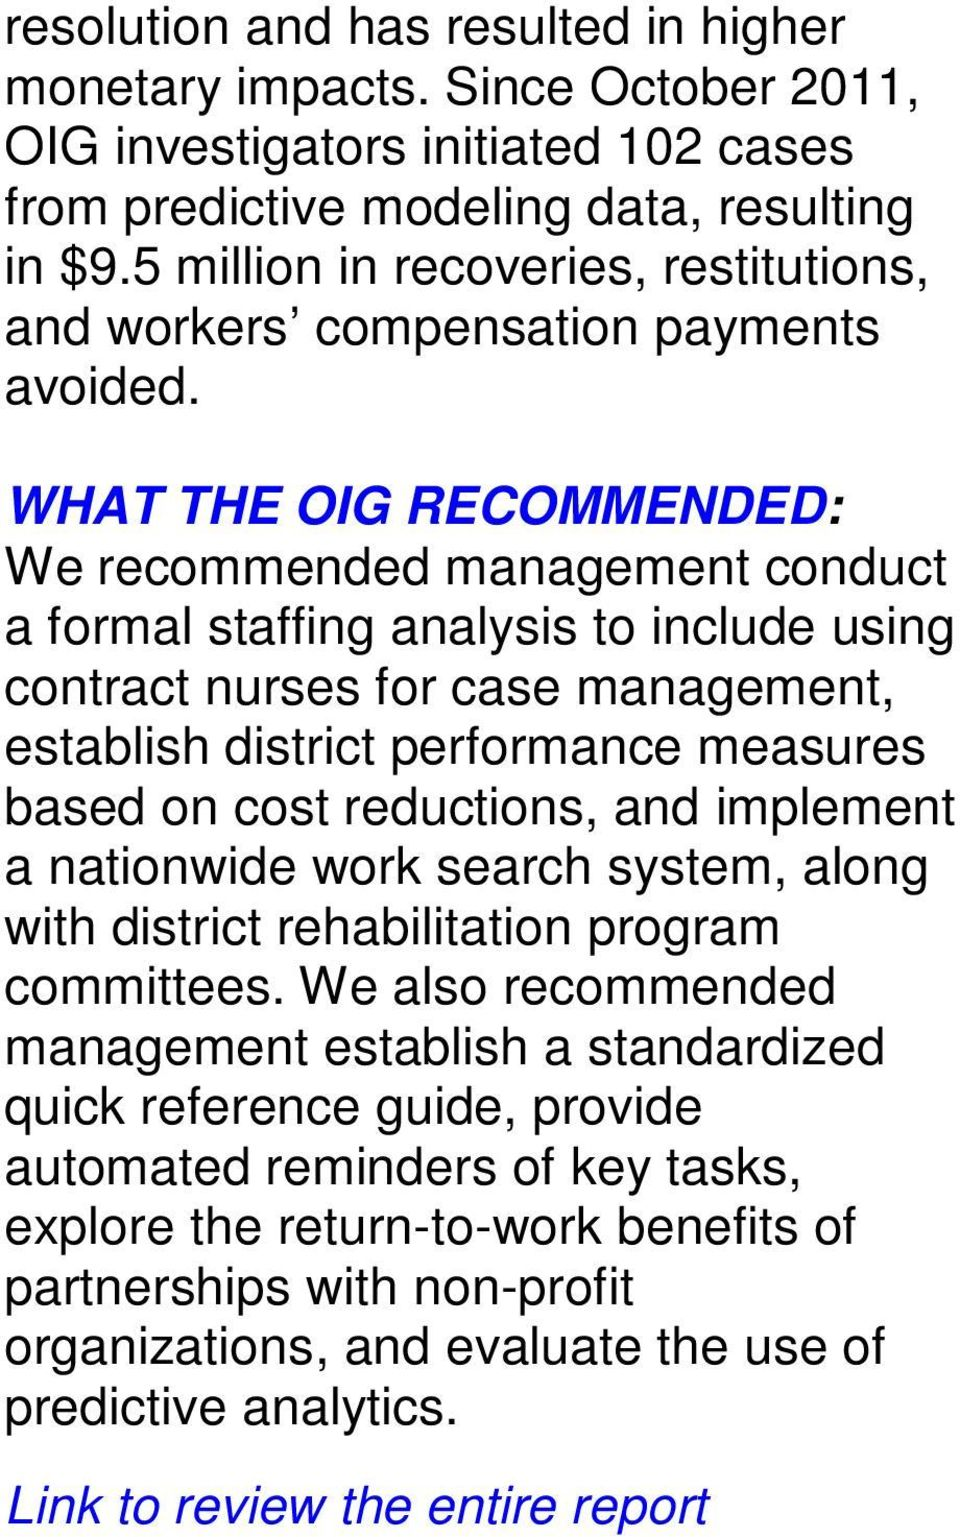 WHAT THE OIG RECOMMENDED: We recommended management conduct a formal staffing analysis to include using contract nurses for case management, establish district performance measures based on cost